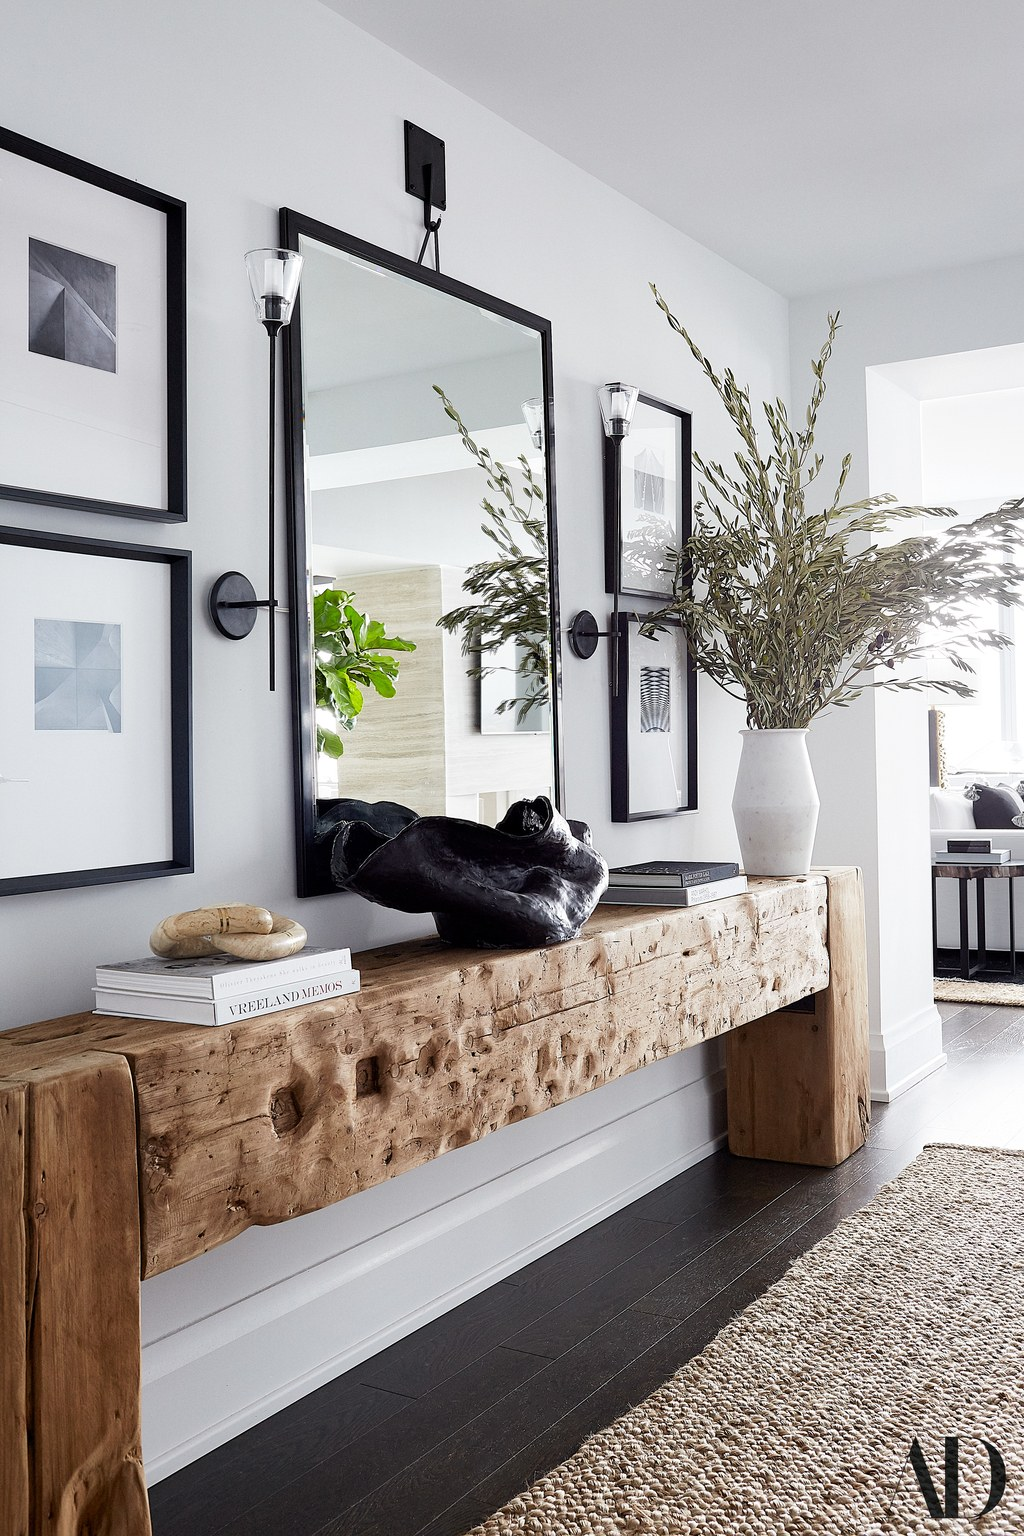 Kerry Washington Transforms a Bare Apartment Into a Cozy Family Home #hausdekowohnzimmer